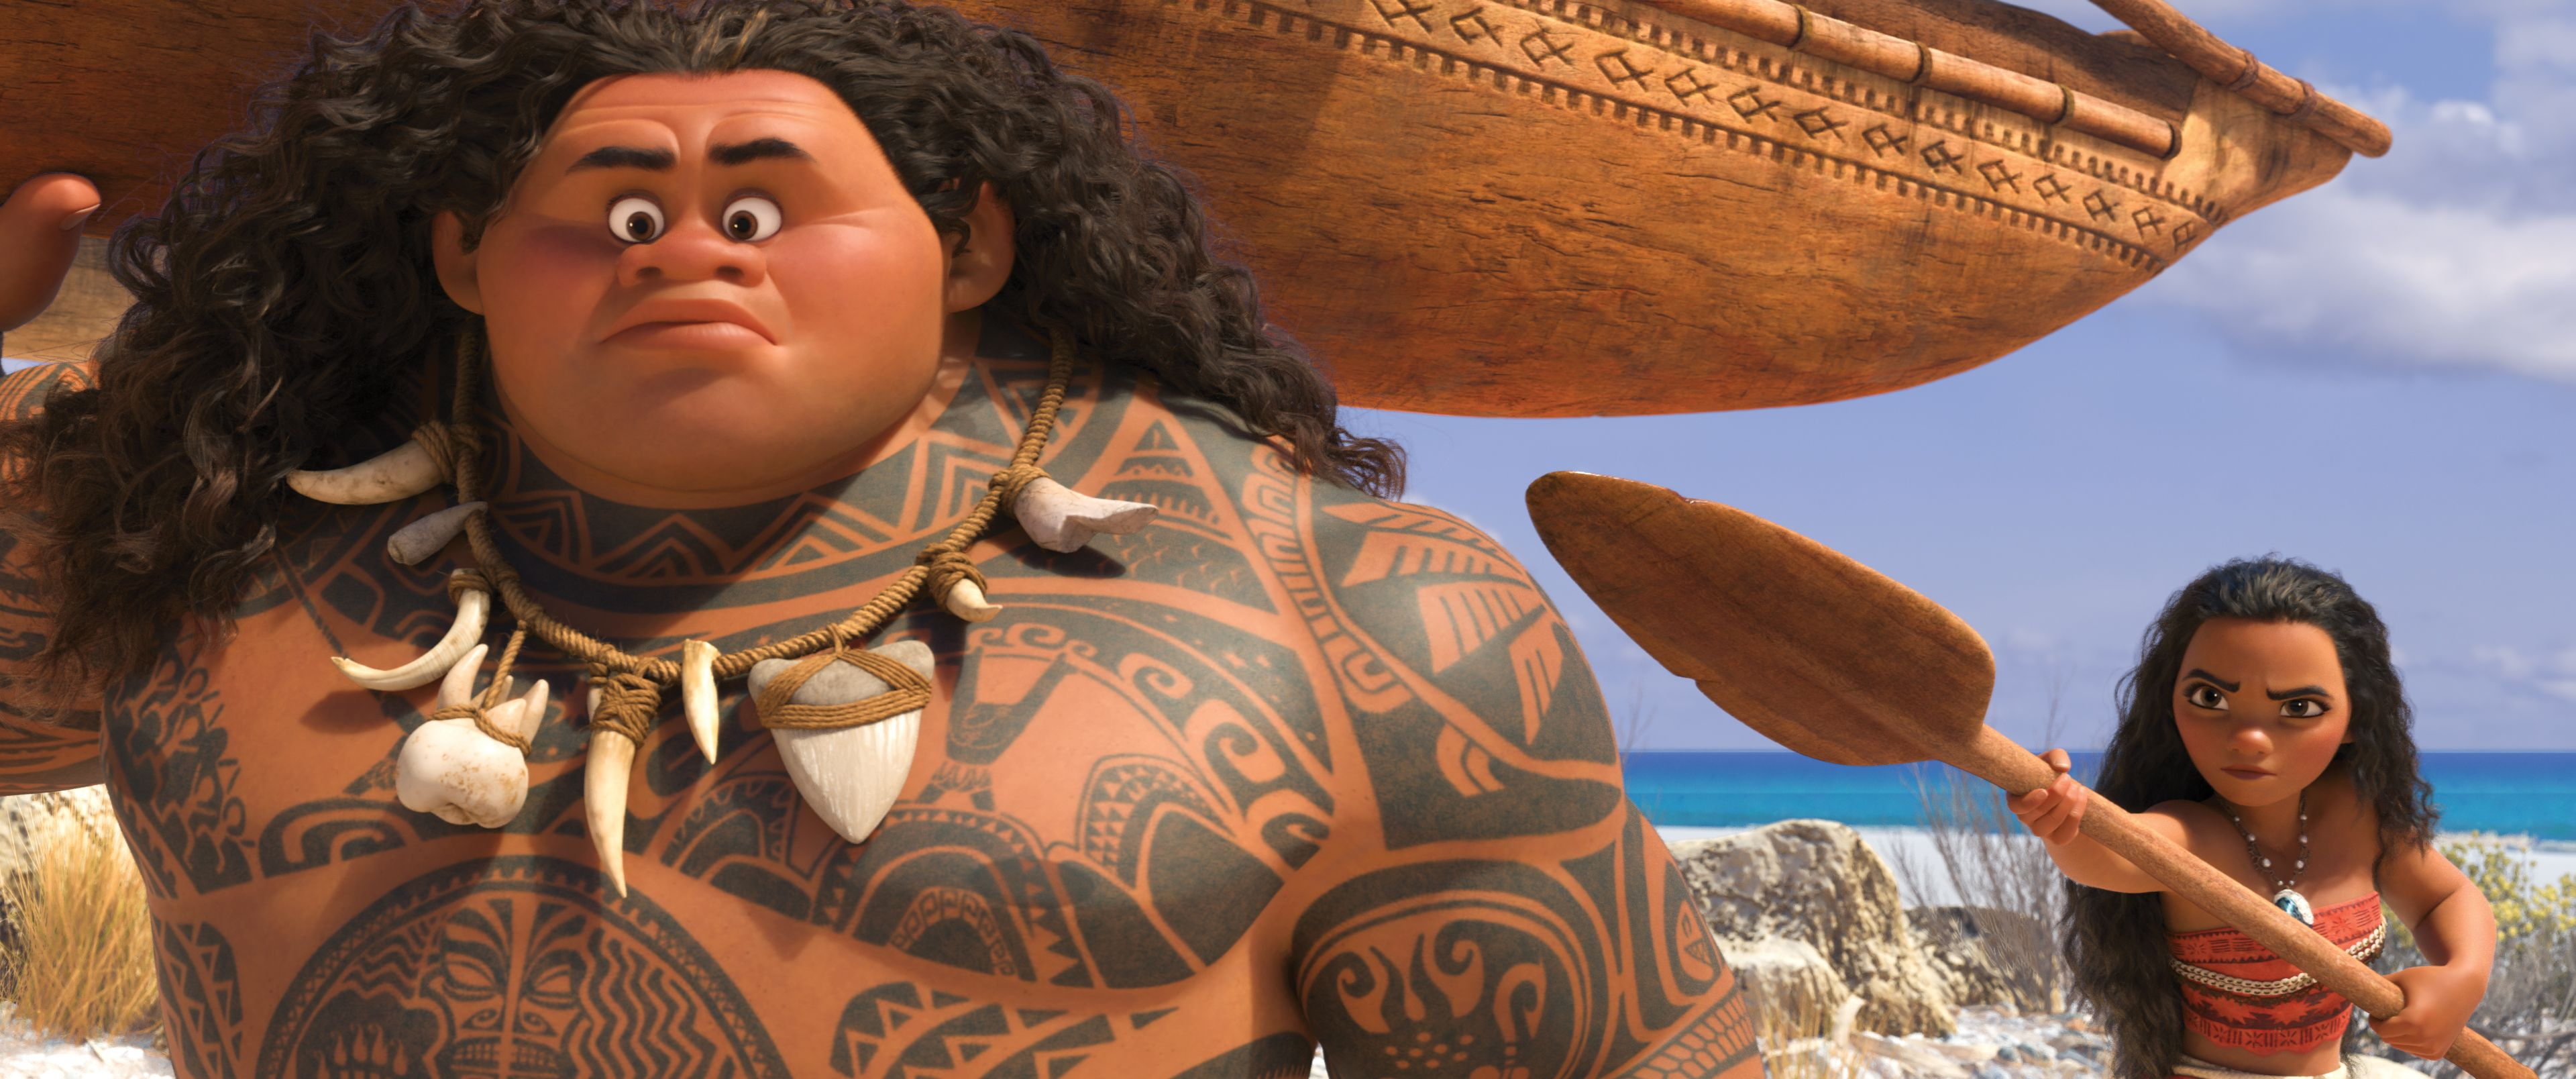 Dwayne Johnson, Moana